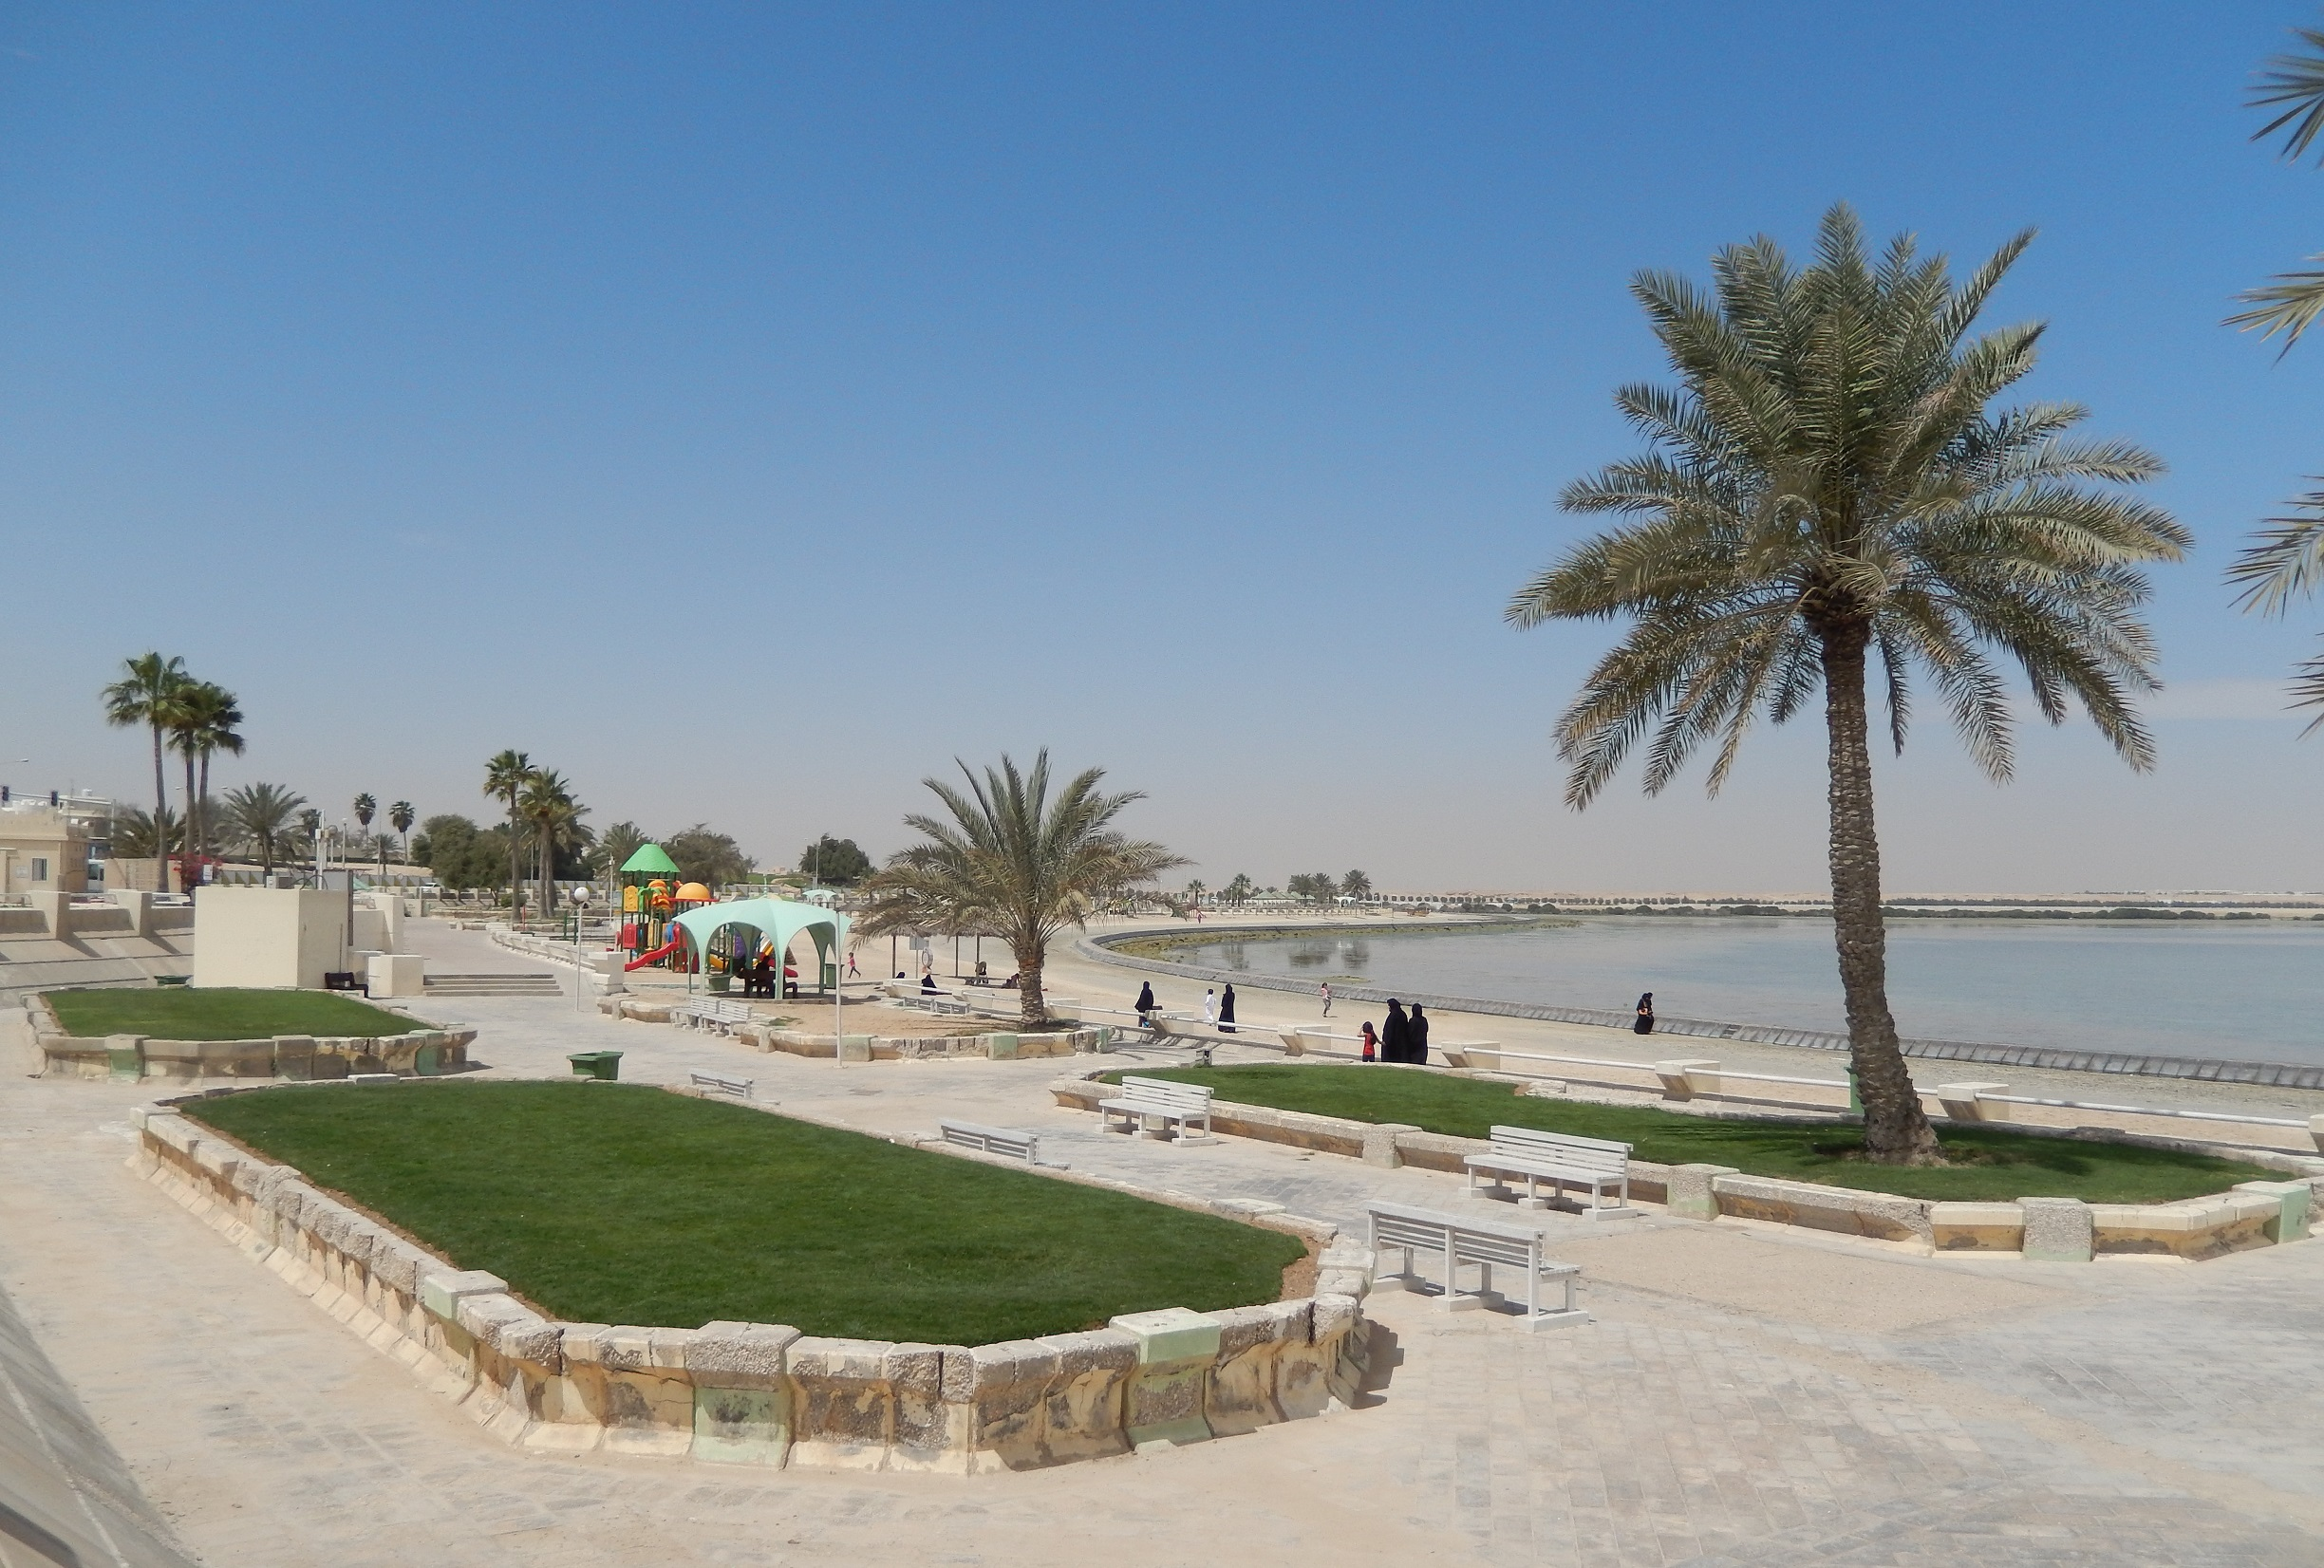 Al Khor Qatar  city photos gallery : Qatar, Al Khor 20 , seafront Wikipedia, the free ...